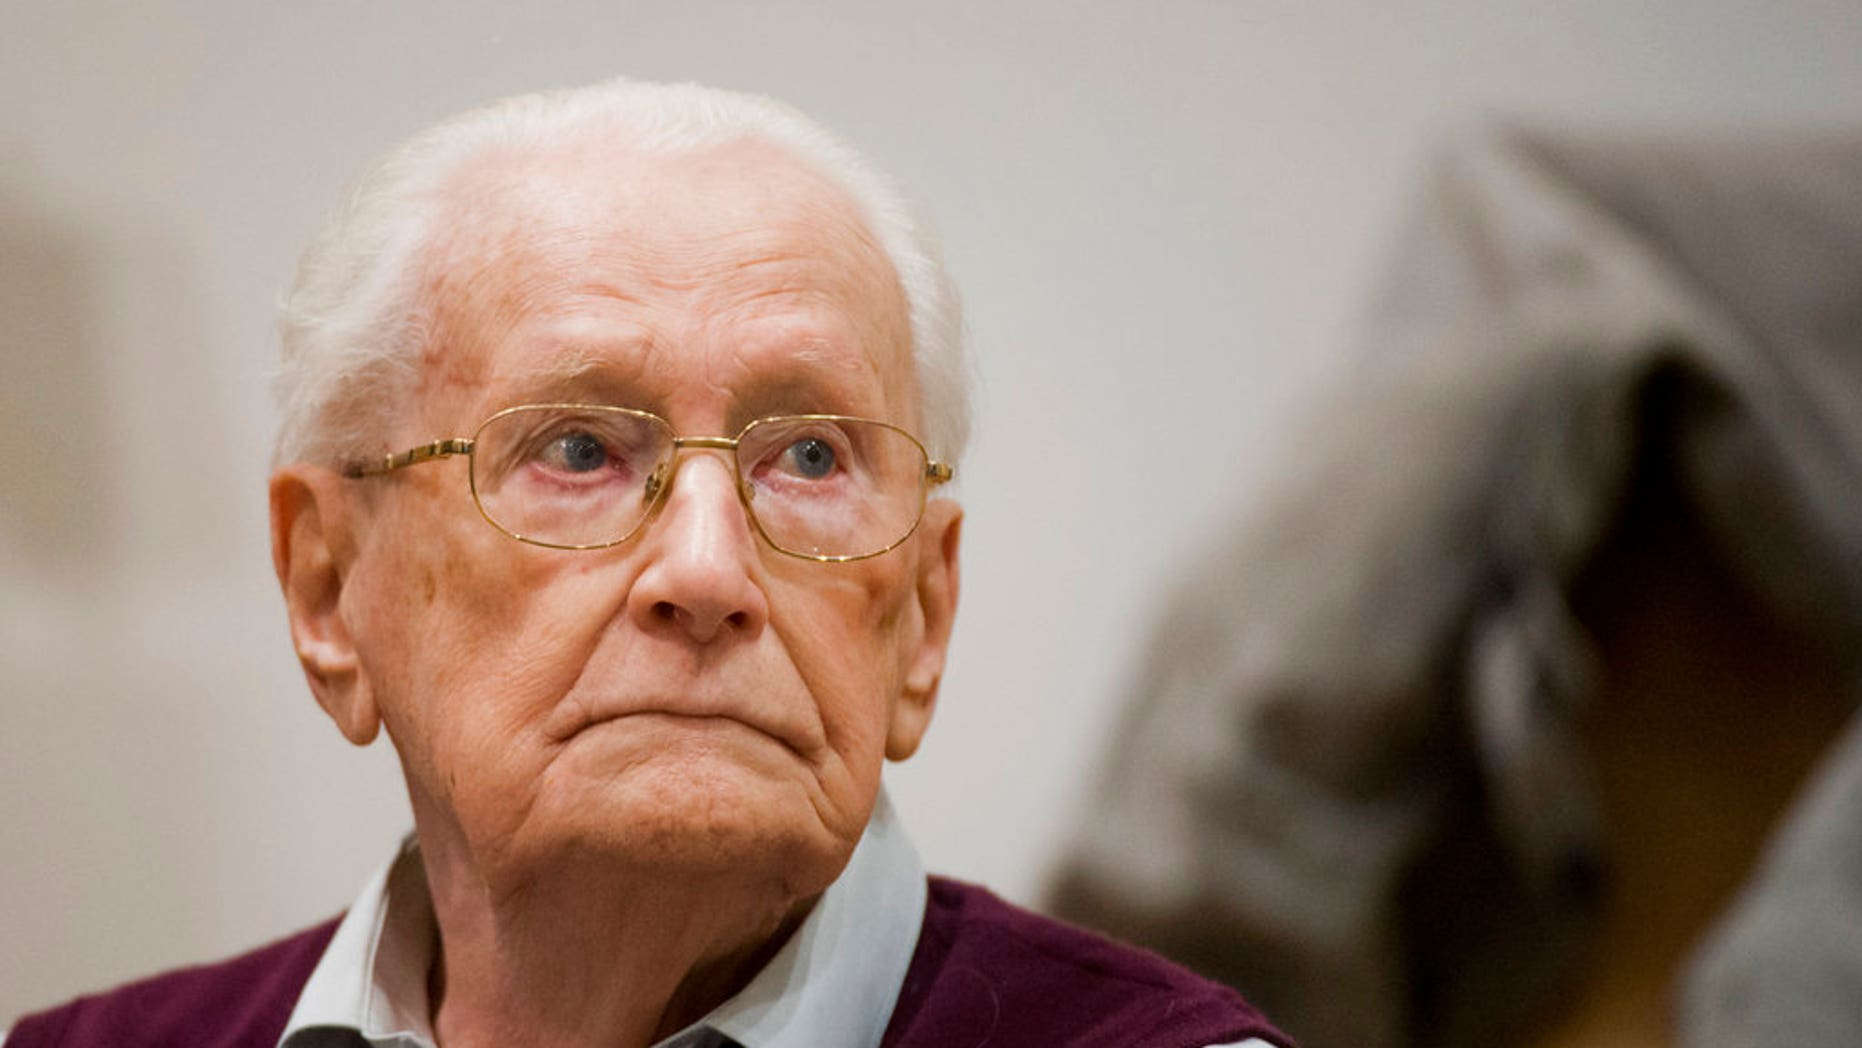 Former SS guard Oskar Groening waits for the start his trial in a courtroom in Lueneburg, northern Germany.